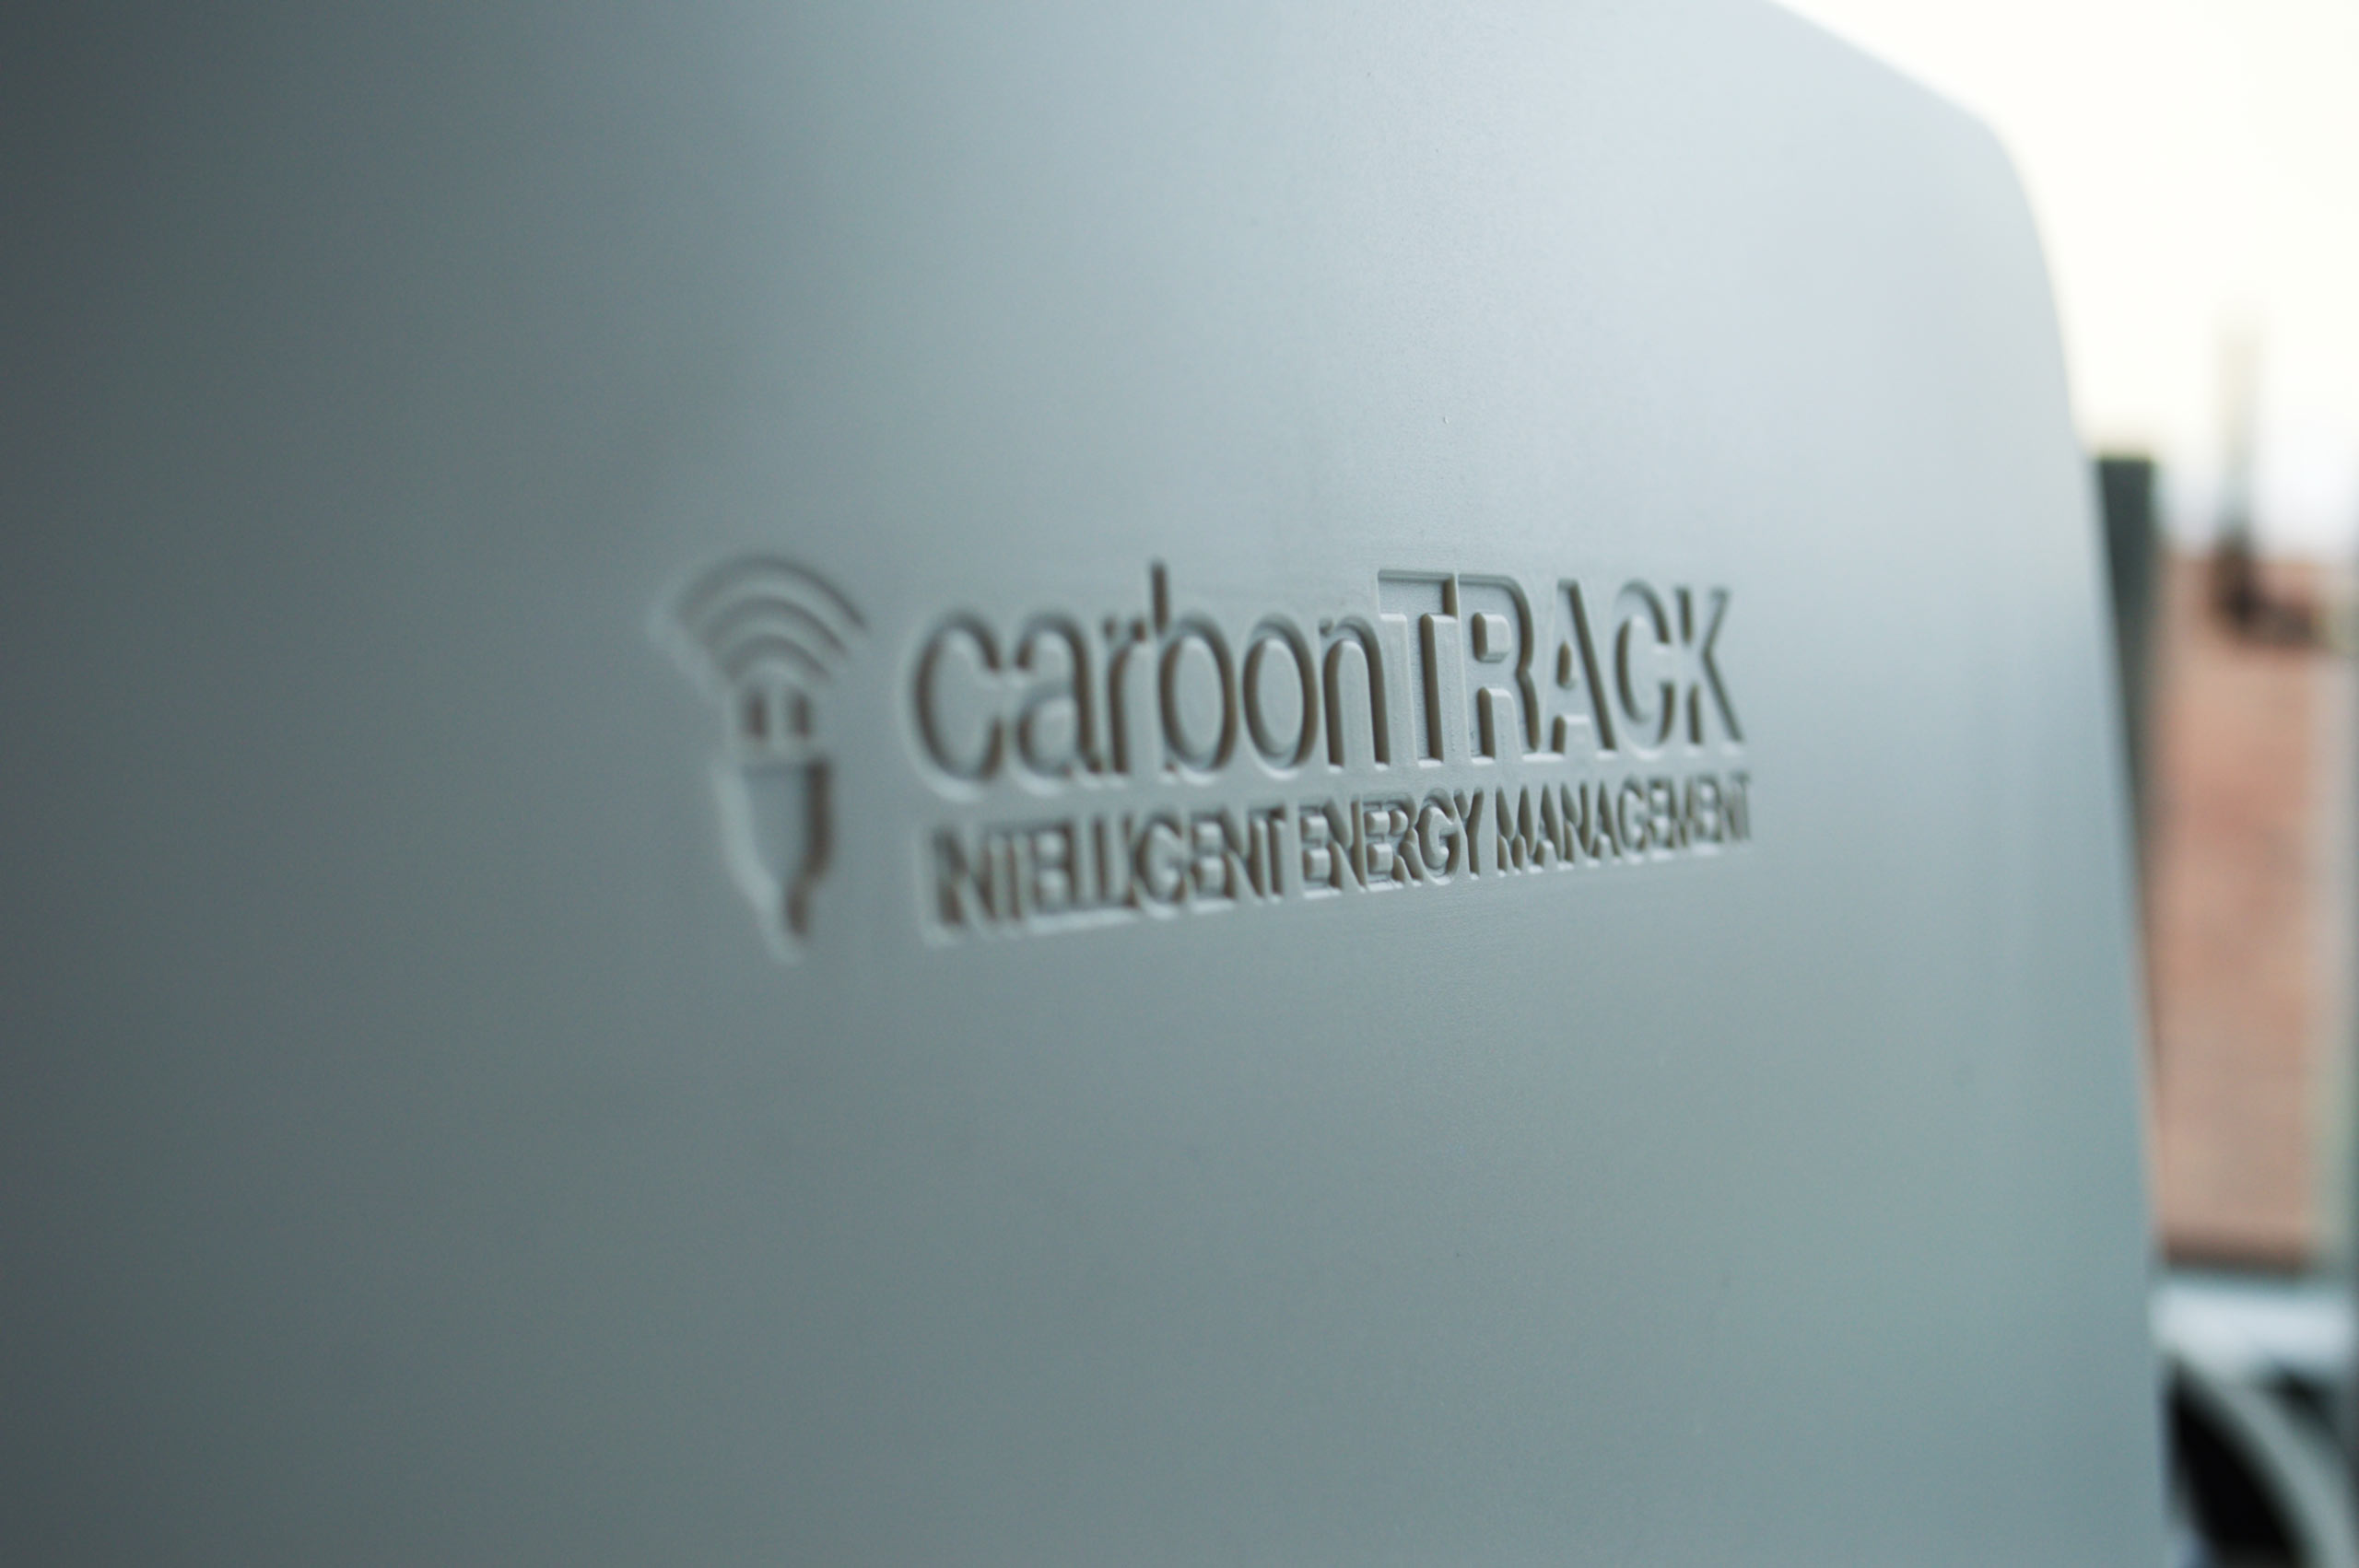 The smooth, grey, weatherproof enclosure of the carbonTRACK Smart Hub shown close up.